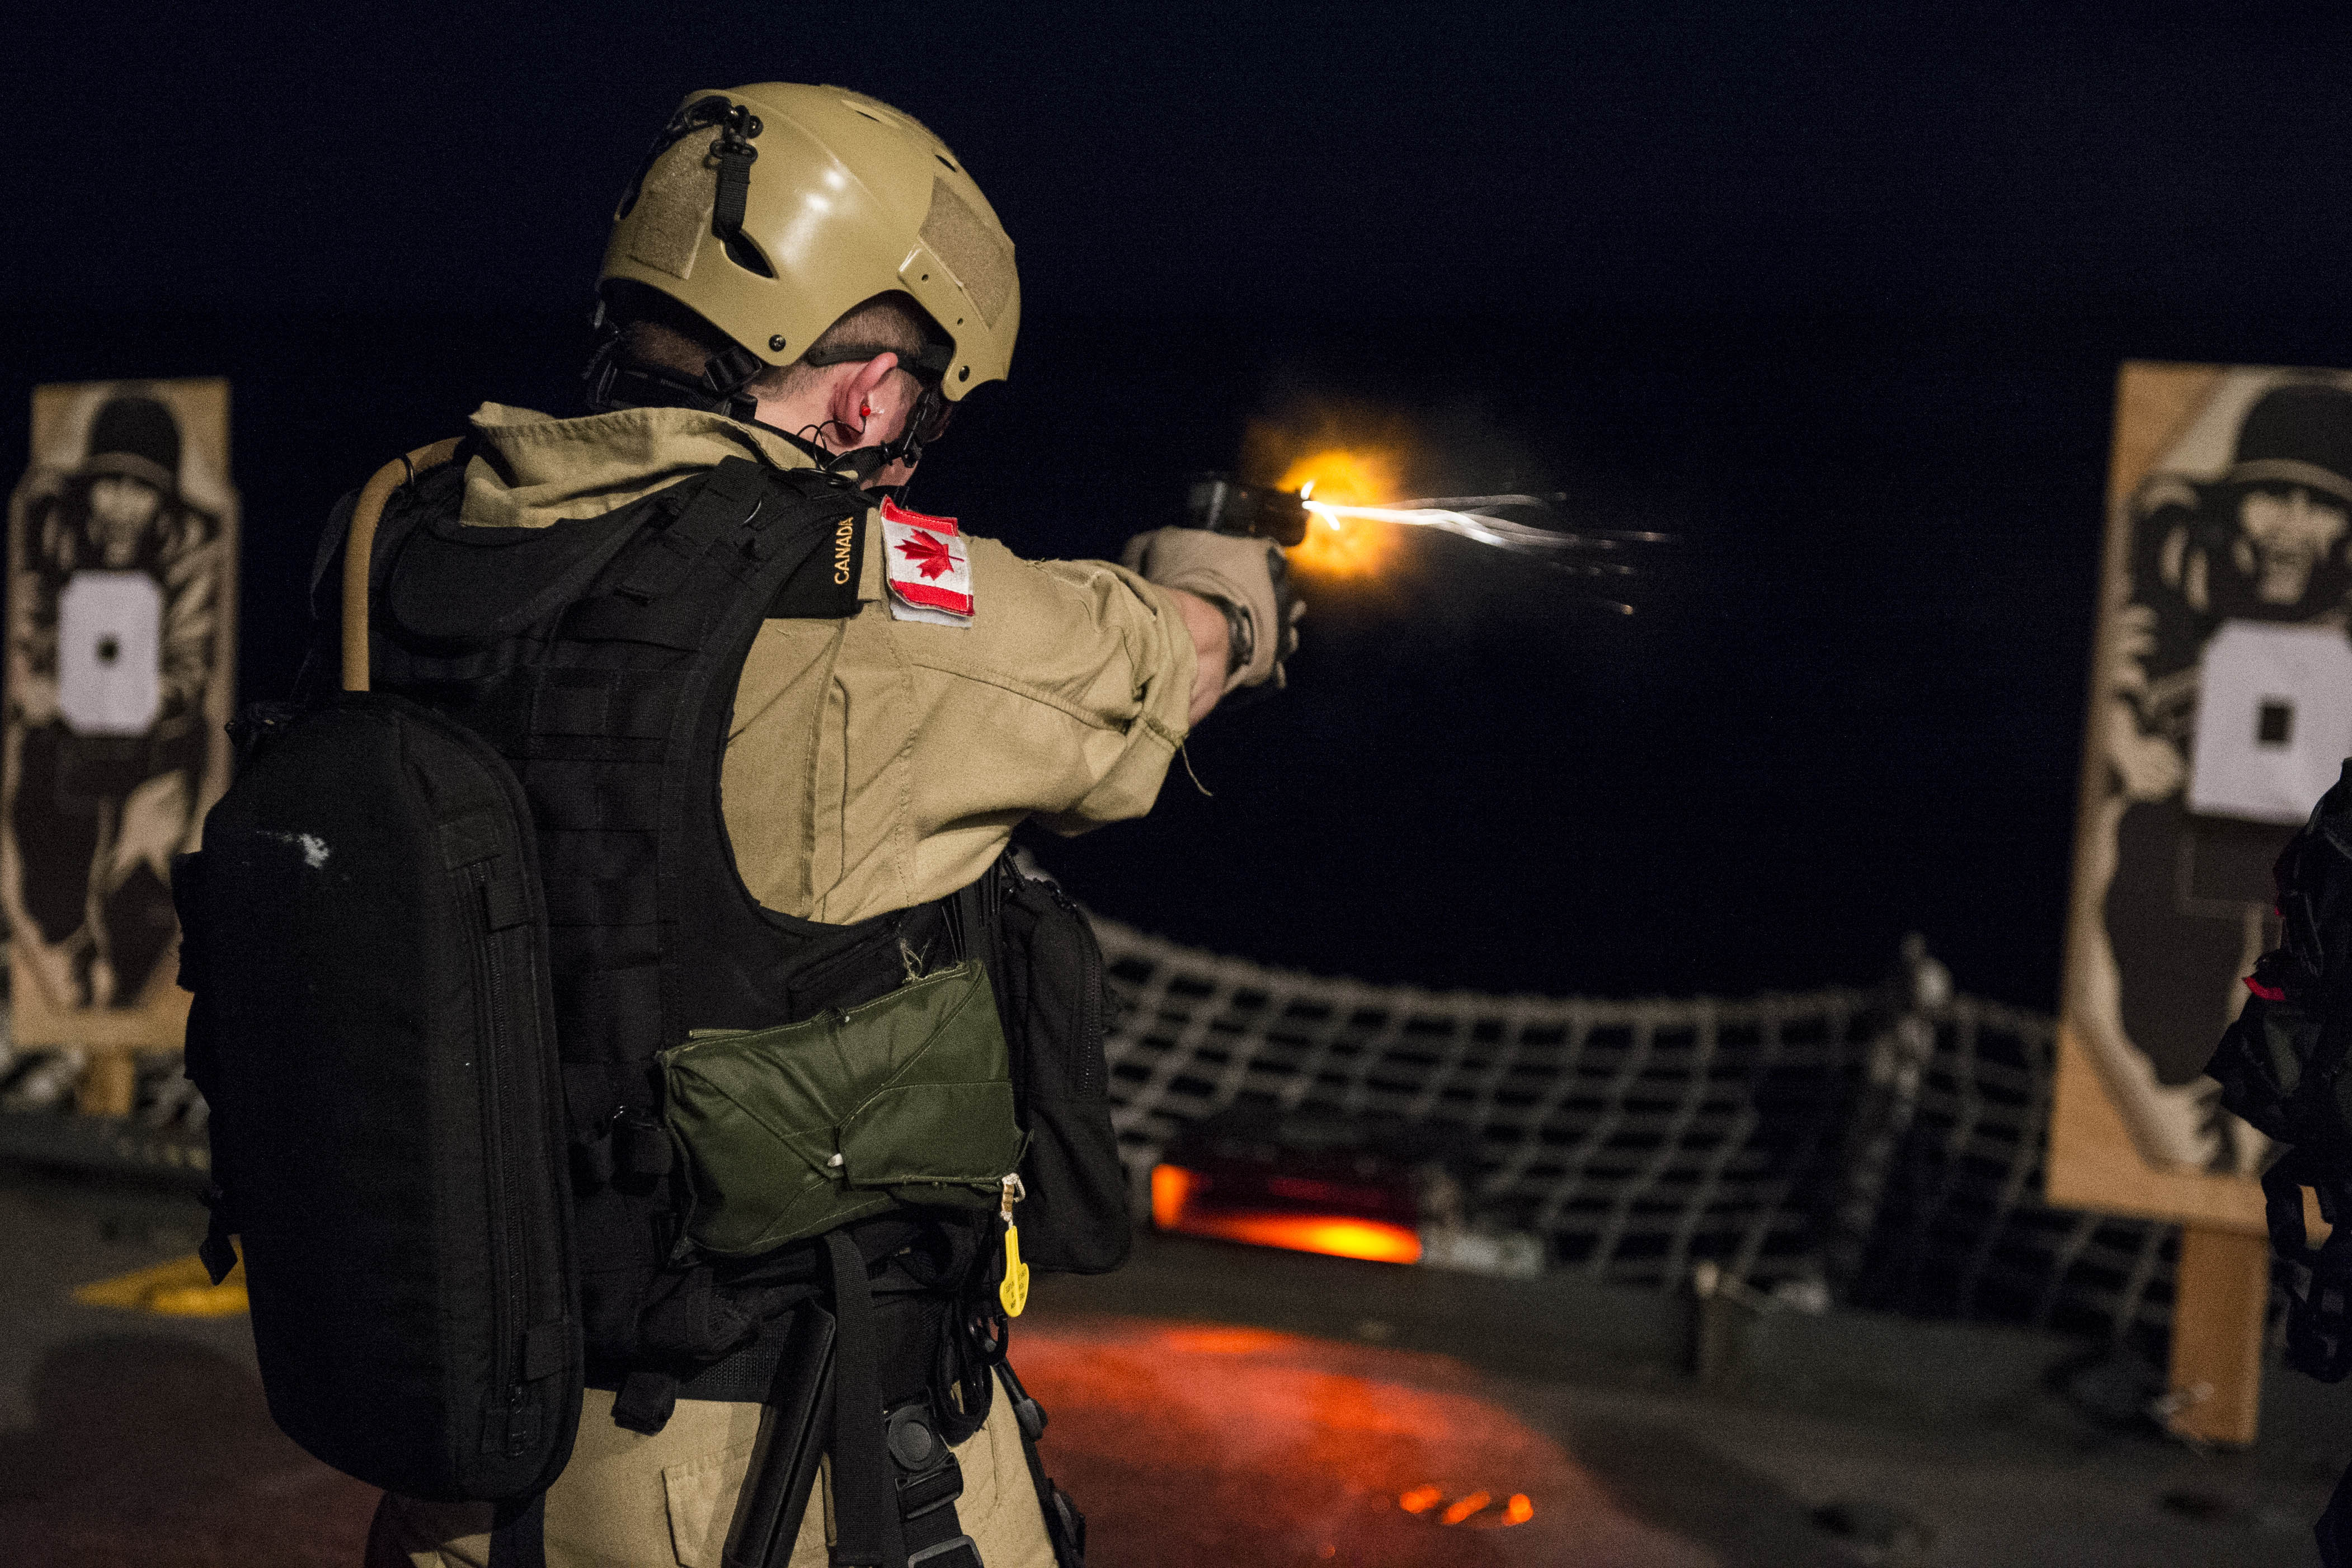 An example of MCpl Bastien's work: The Naval Boarding Party of Her Majesty's Canadian Ship Regina conducts a small arms serial on the flight deck as part of pre-deployment training for OP ARTEMIS on January 18, 2013 in the Pacific Ocean west of Hawaii.